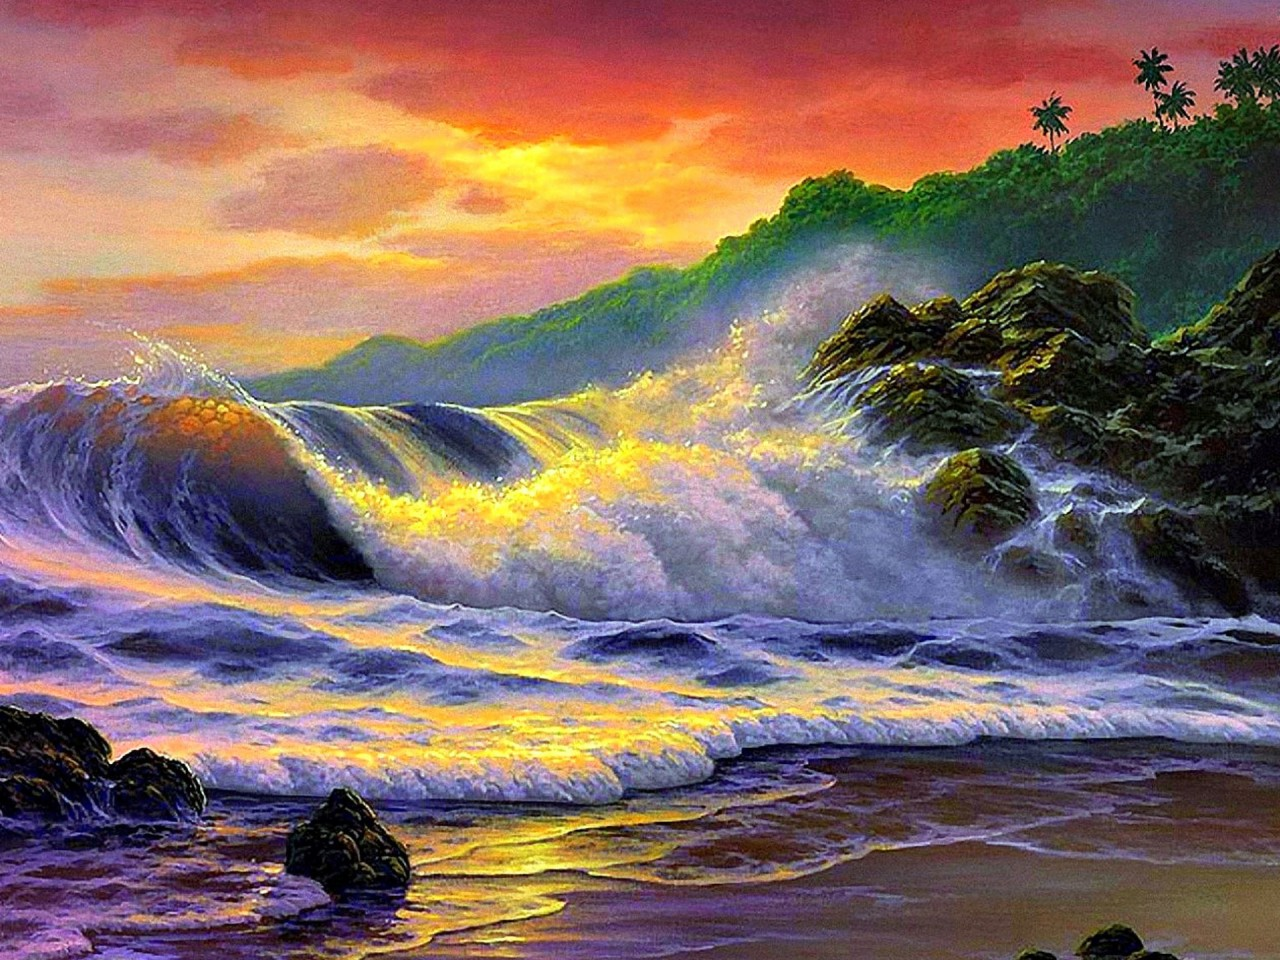 Sunset With Sea Wave Tap To See More Breathtaking Beach: Ocean Wave Rocks Palms Sunset Wallpapers